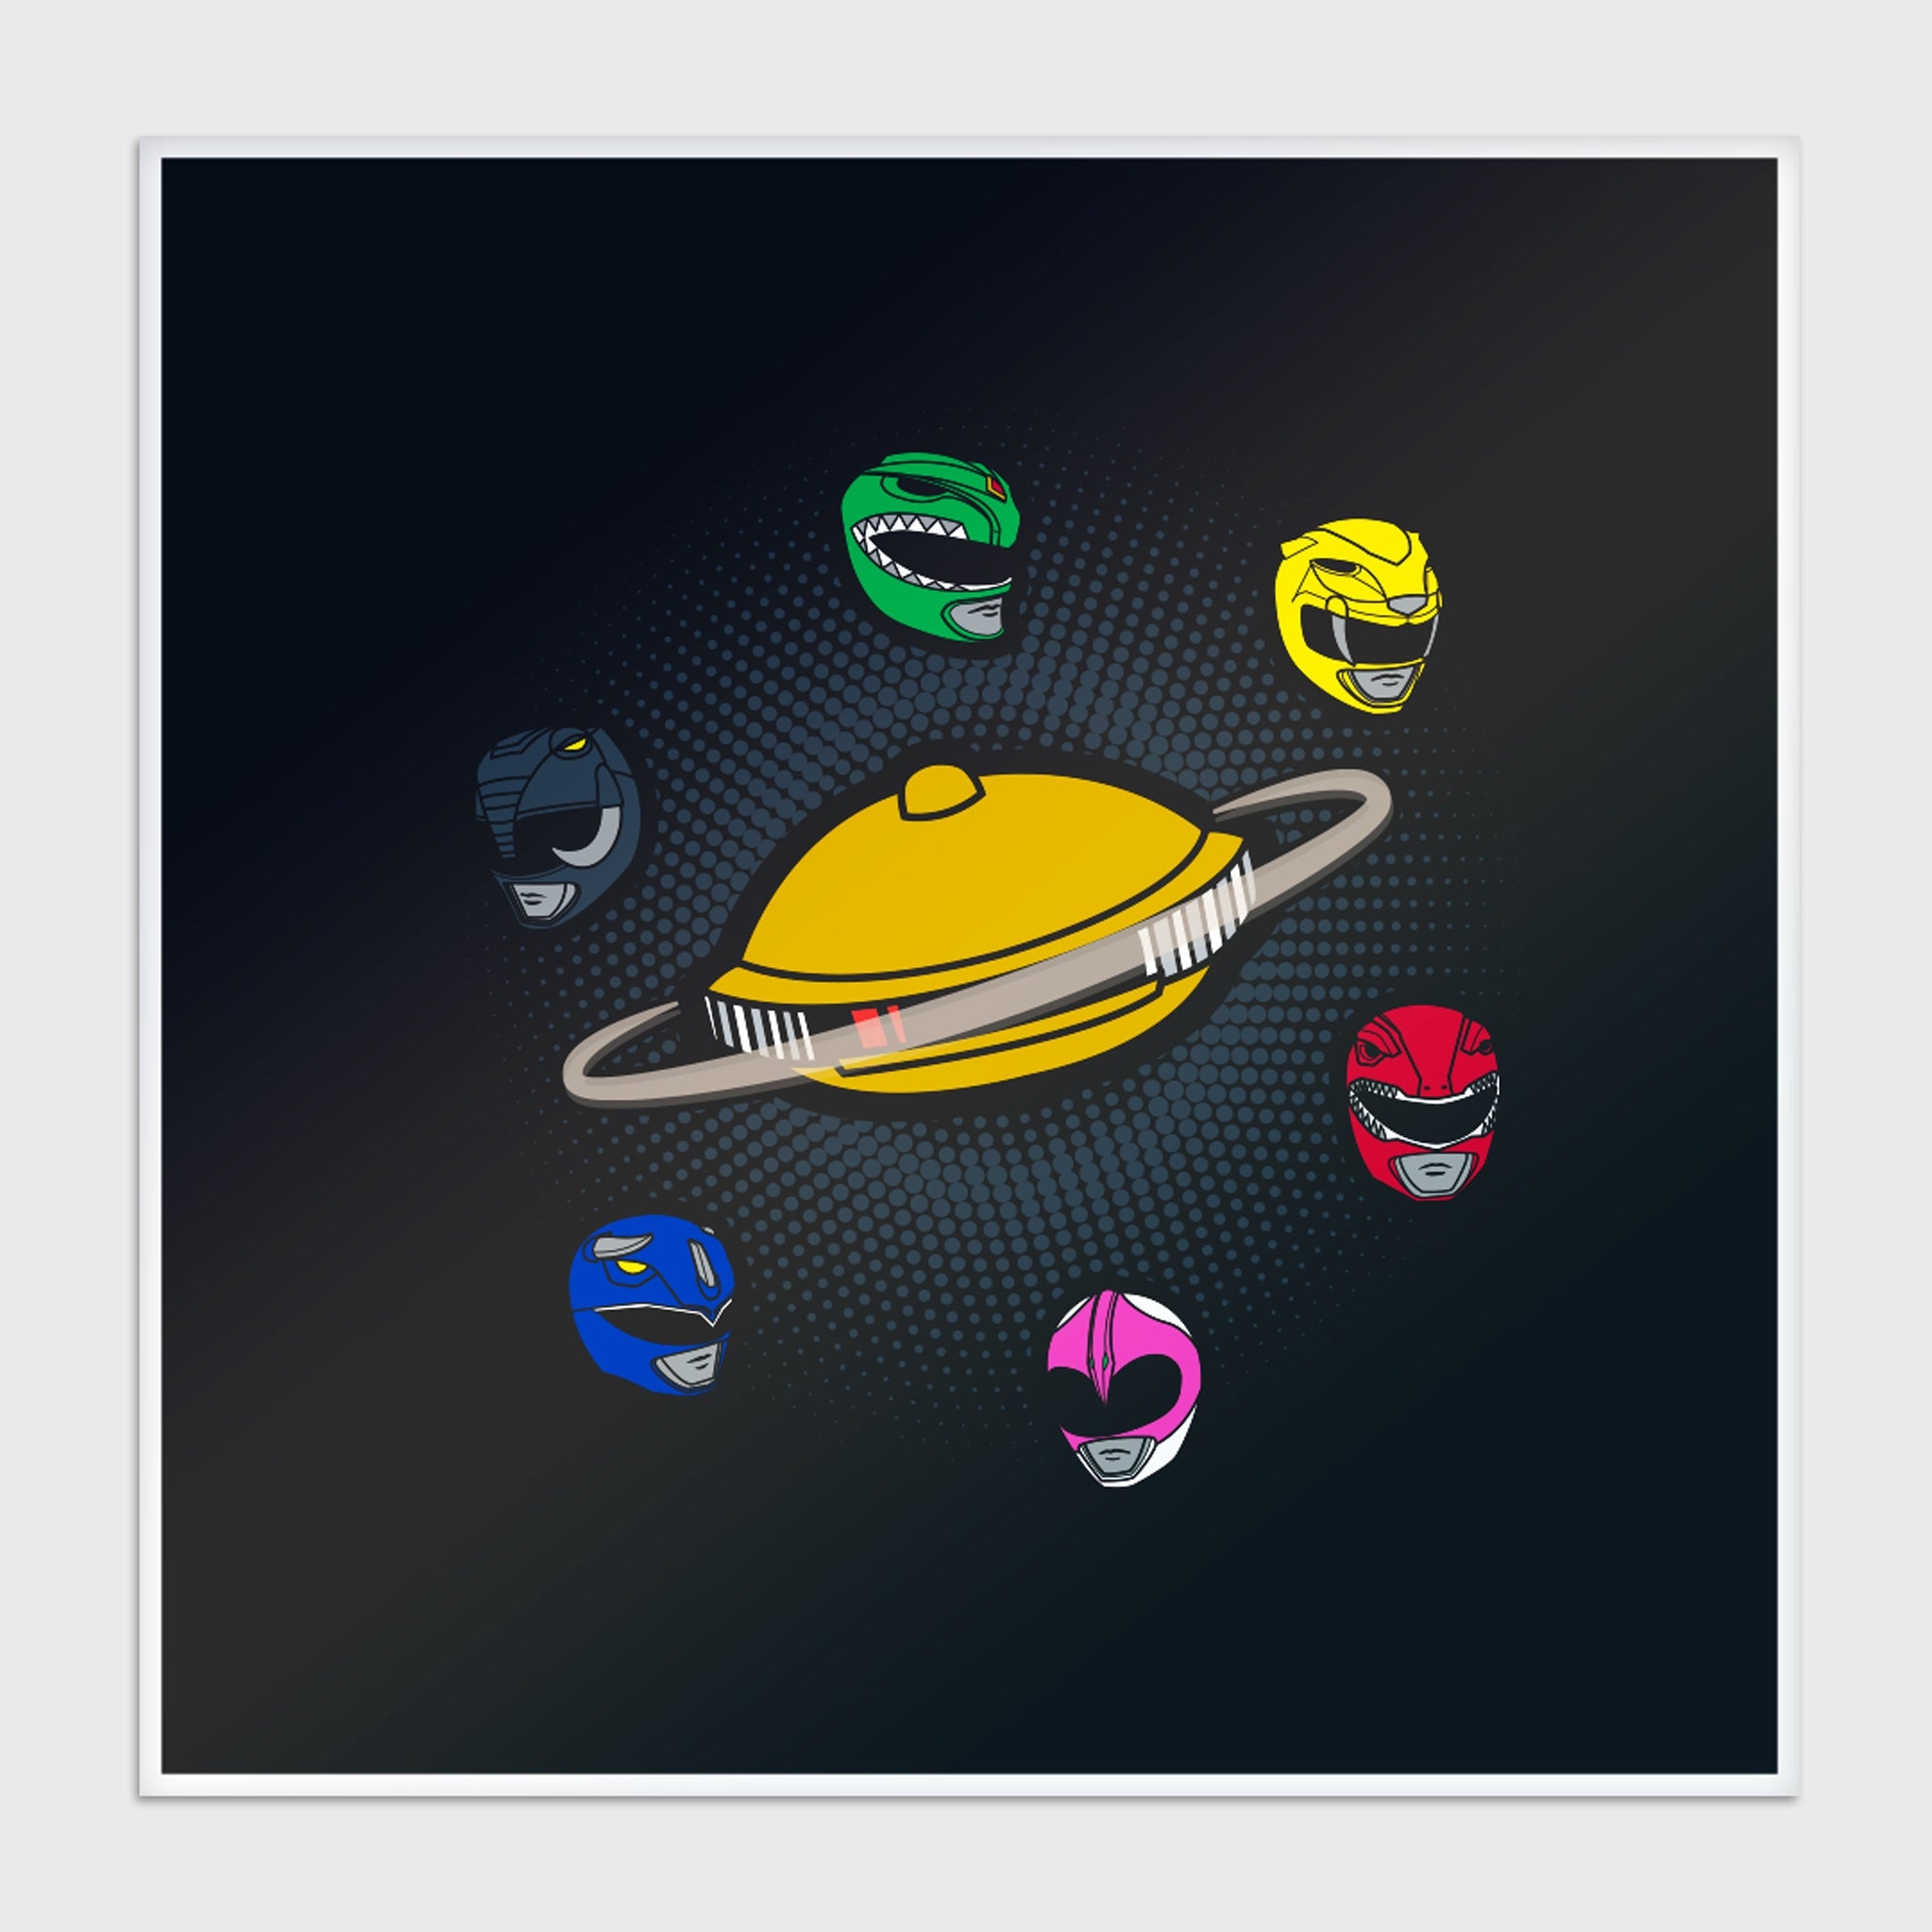 power rangers mighty morphin mmpr 90s kids green ranger black ranger blue ranger red ranger yellow ranger pink ranger exclusive gamestop retail box collectibles culturefly art print poster